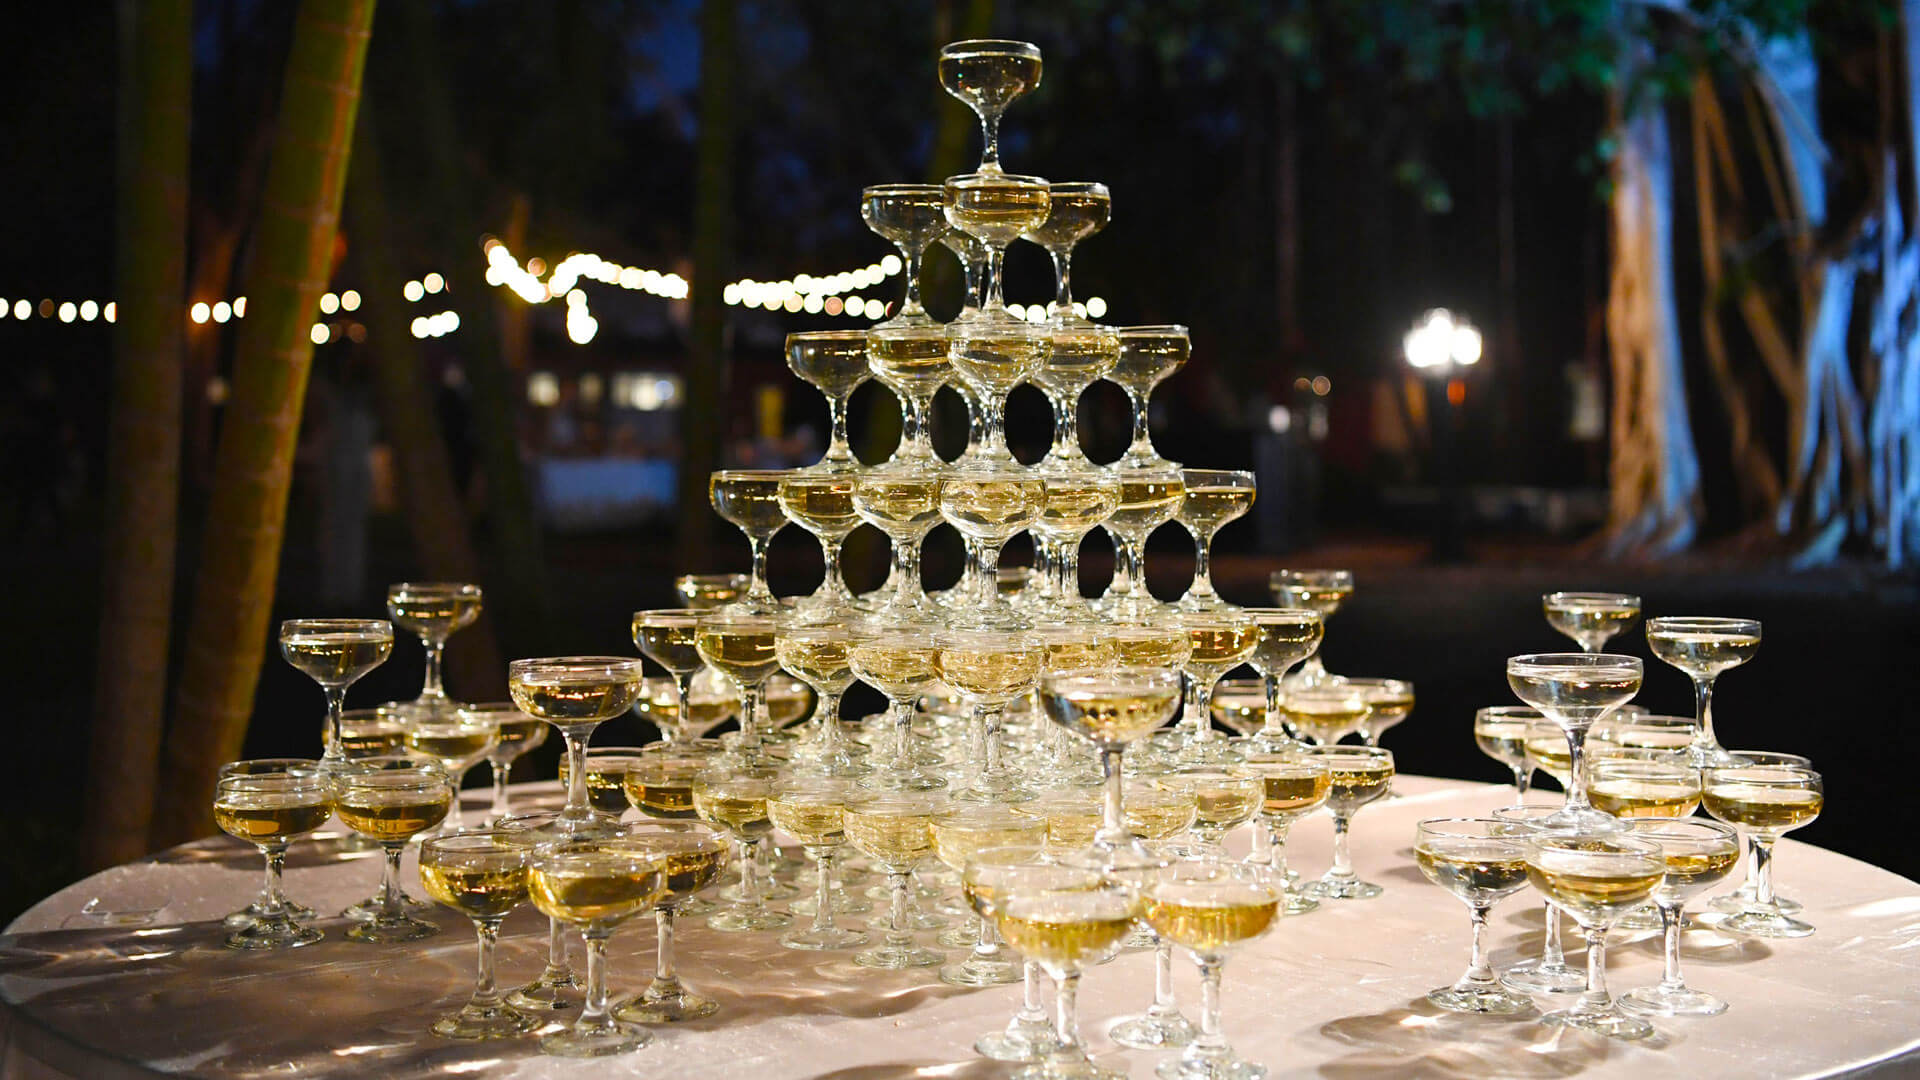 a tower of champagne classes on a table during a wedding or celebration